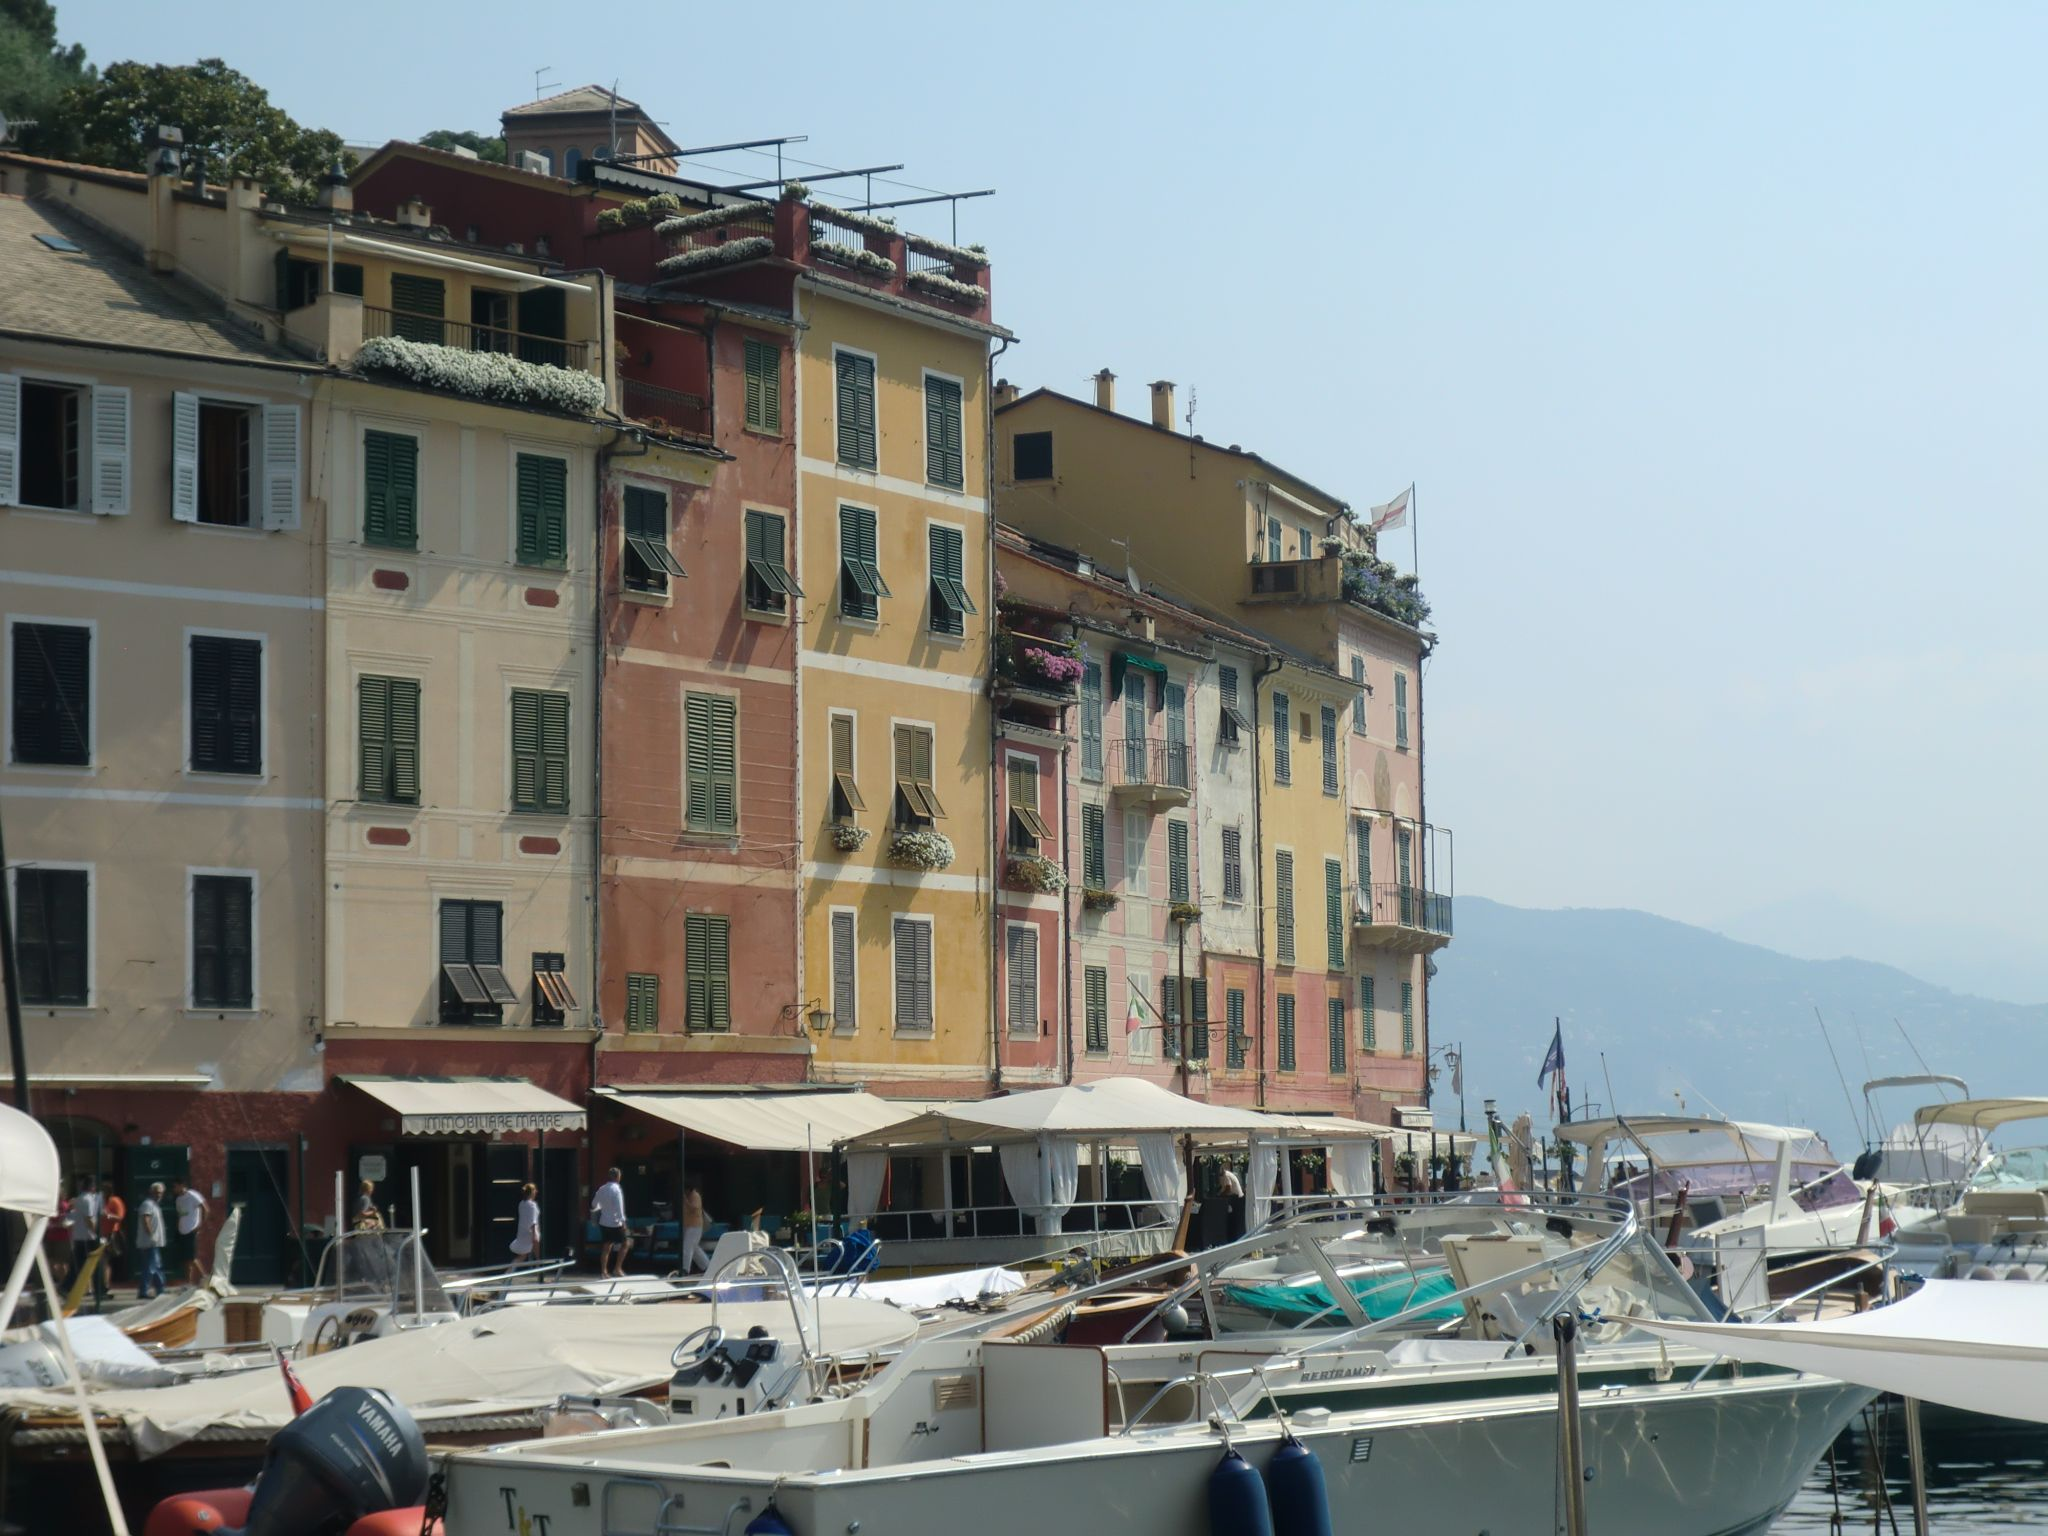 Portofino 7 - Portofino: a small pearl on the sea